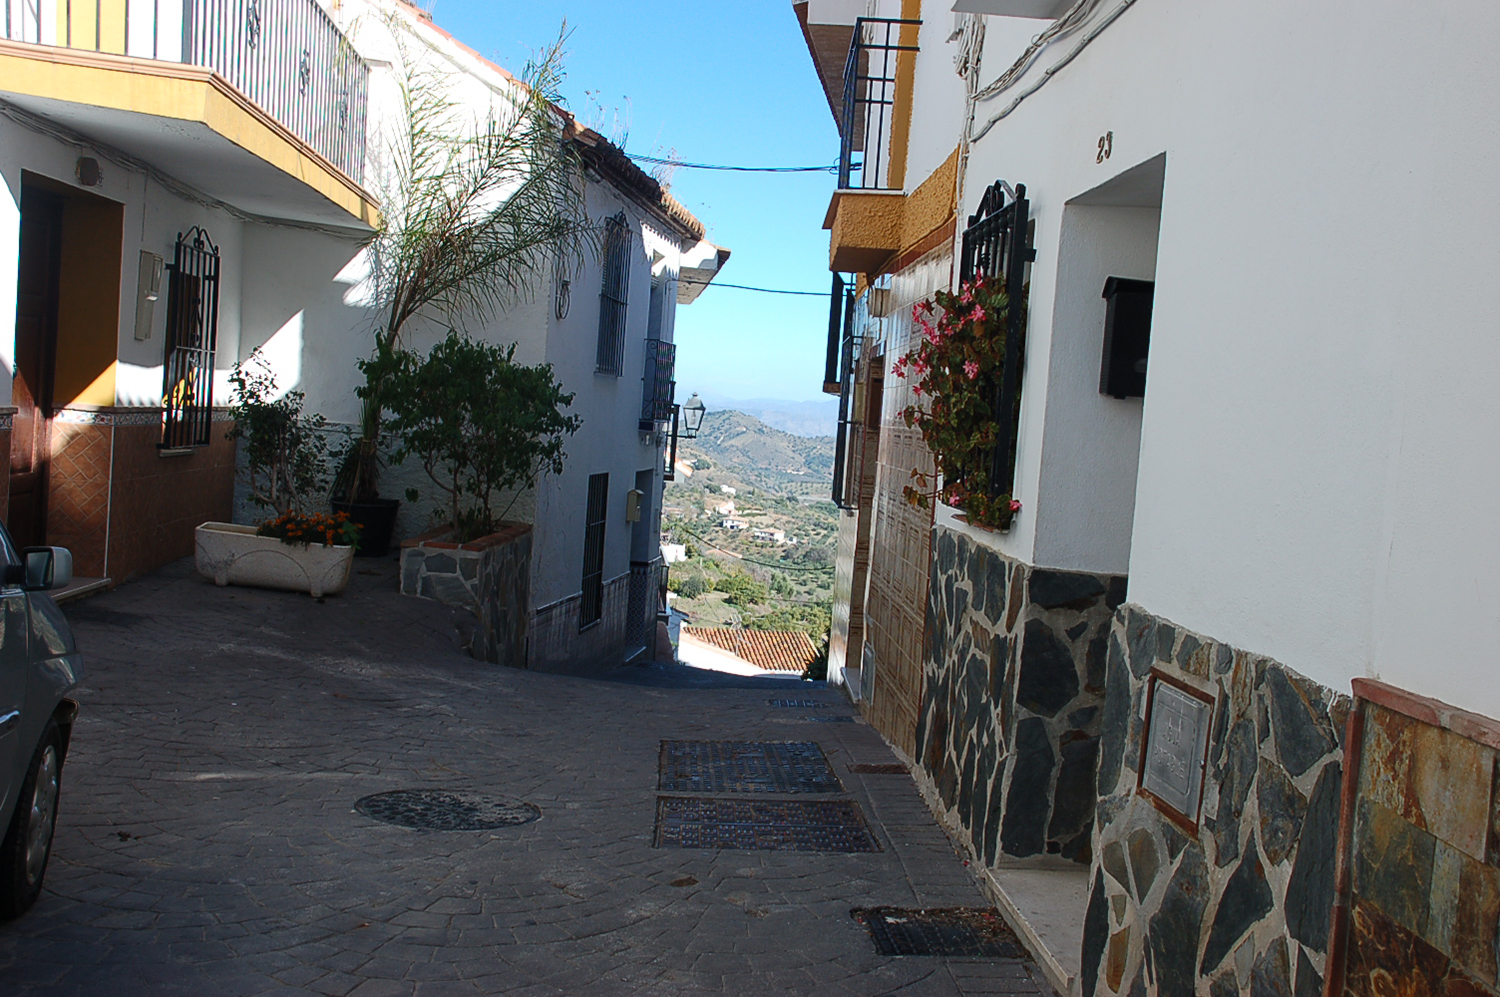 RiS 114 Exceptionally well renovated town house in Guaro – 175,000€